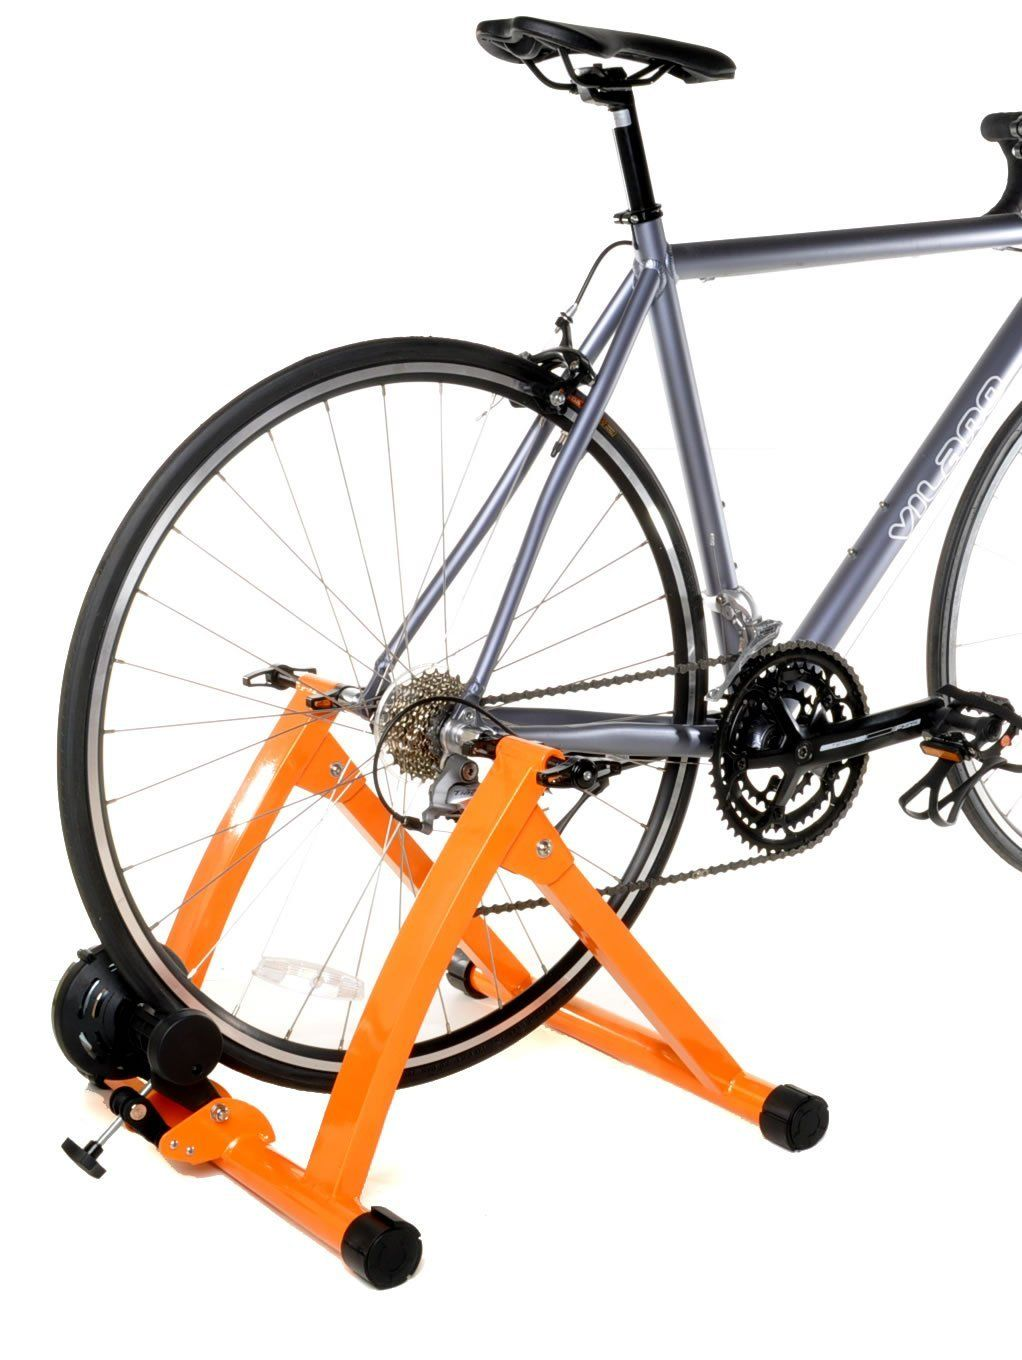 Cycle BicycleTrainer Indoor Exercise Portable Magnetic Stand Fitness  Machine Out